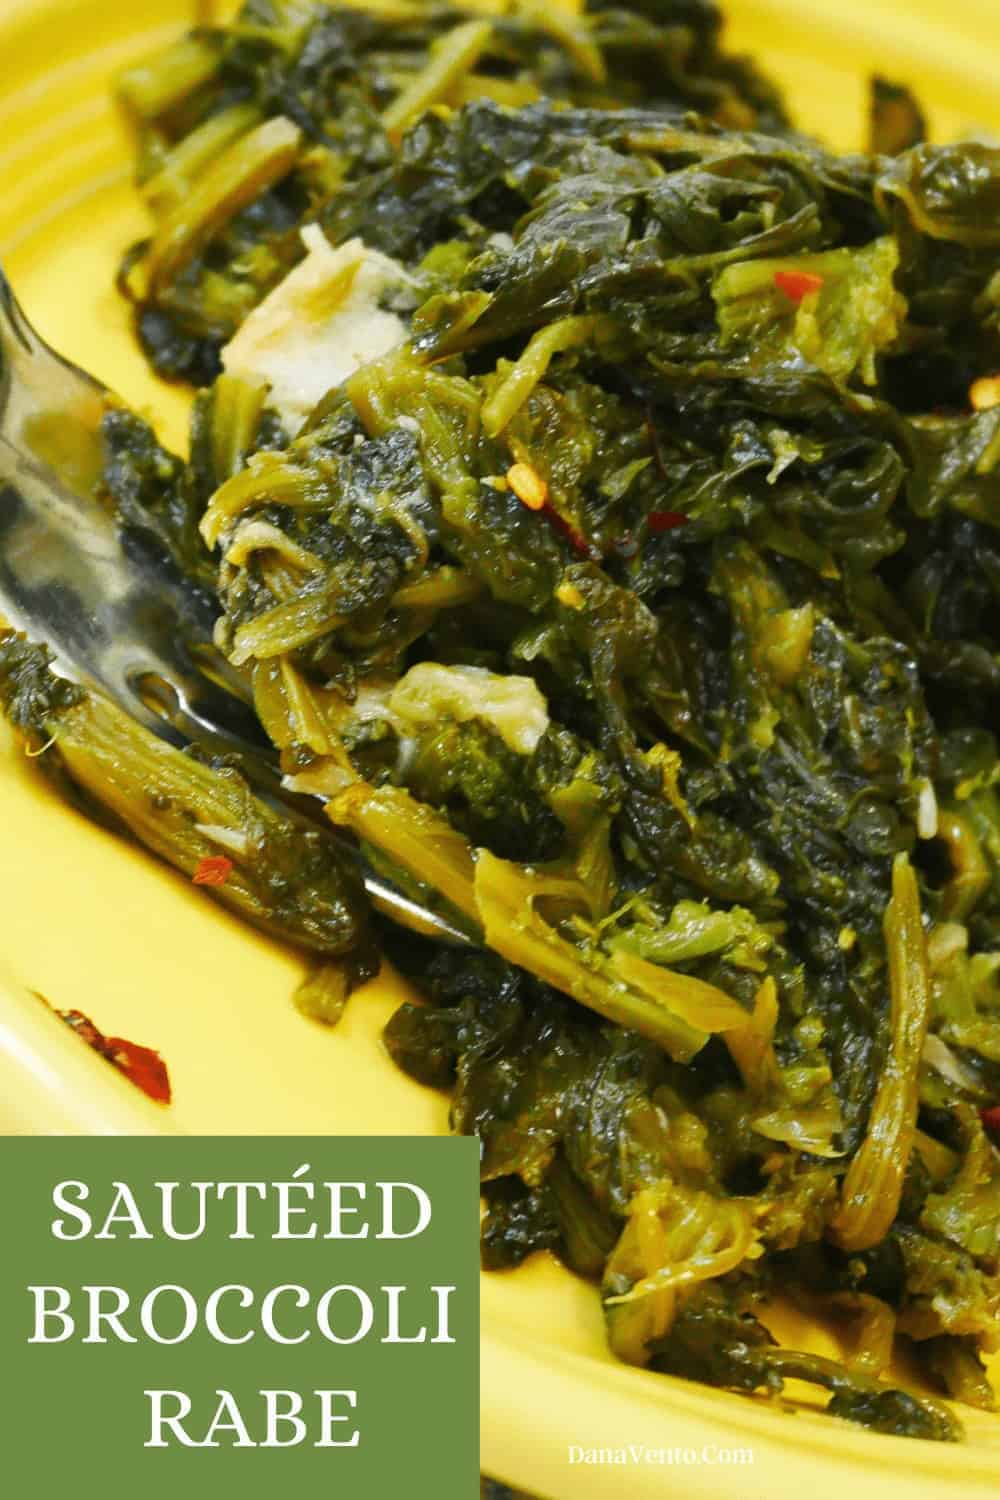 sauteed broccoli rabe superfood up close on a plate